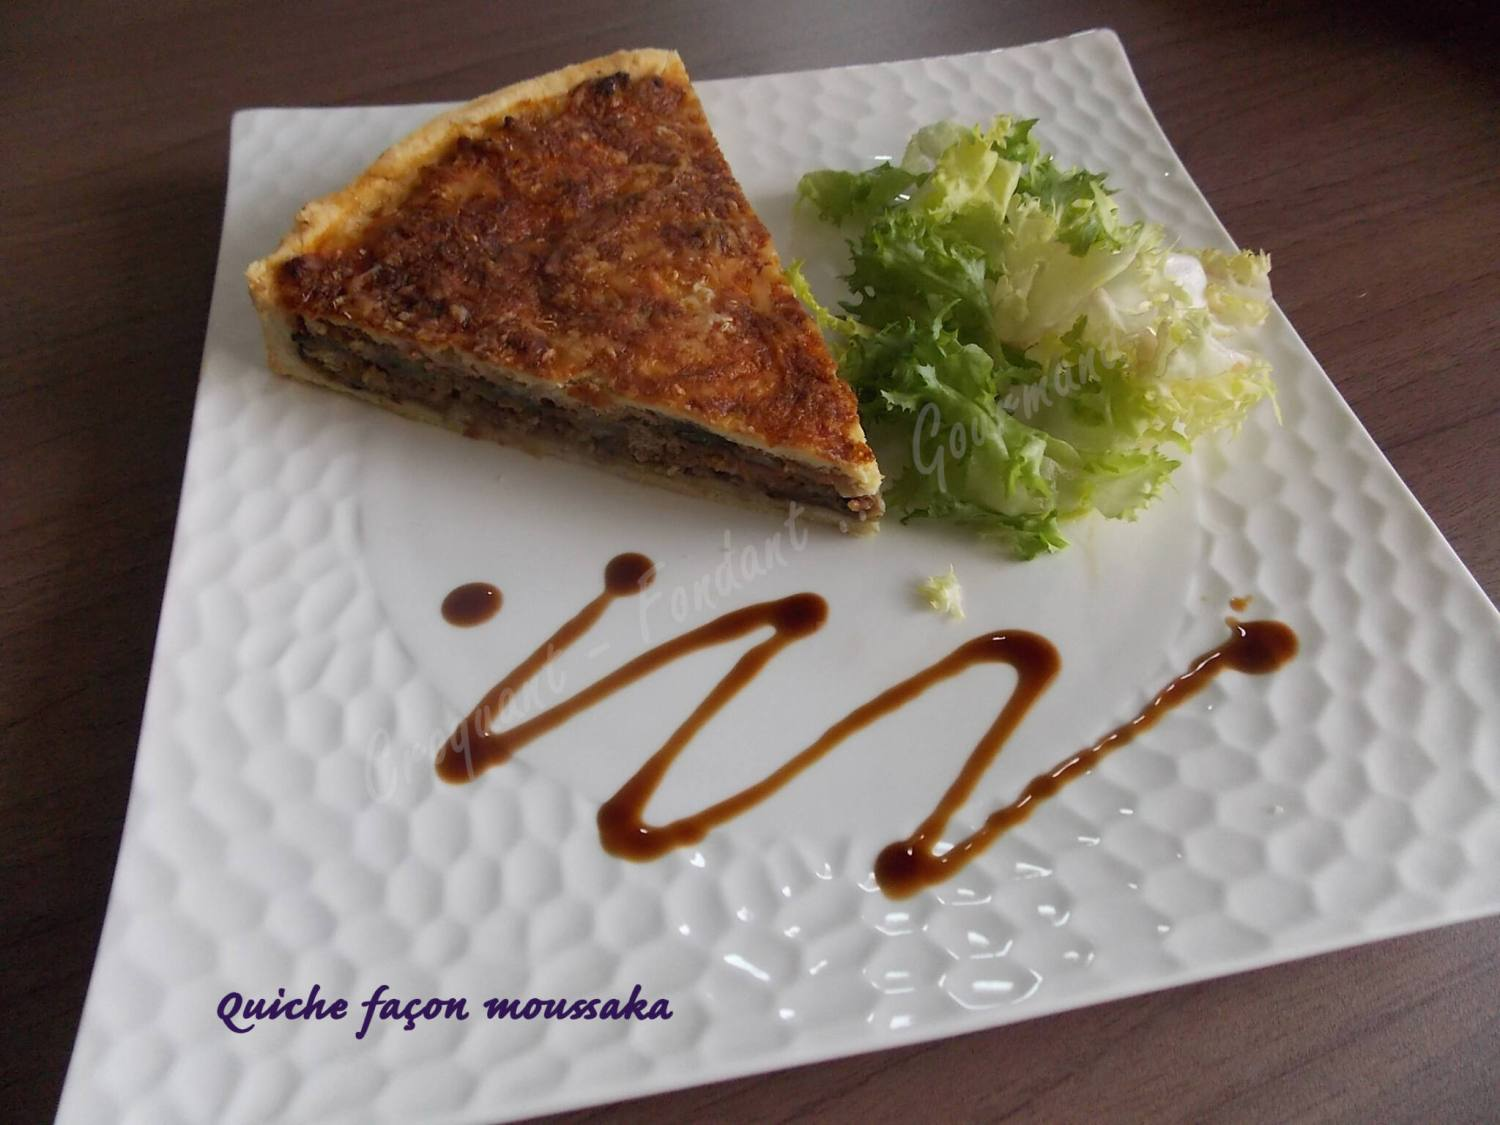 quiche-facon-moussaka-dscn6619